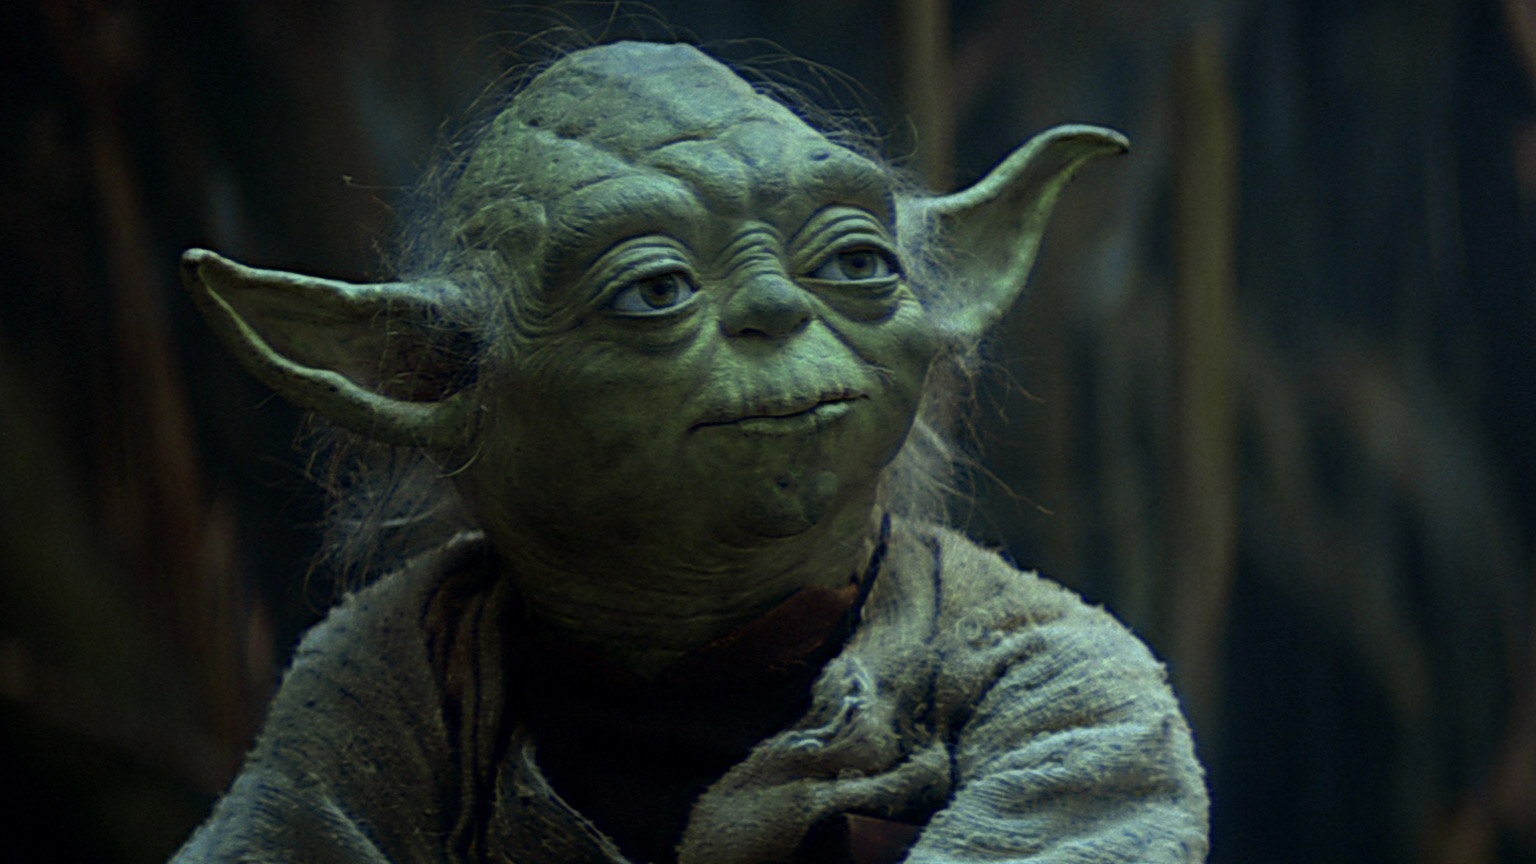 Master Yoda has taught many Jedi about mindfulness.